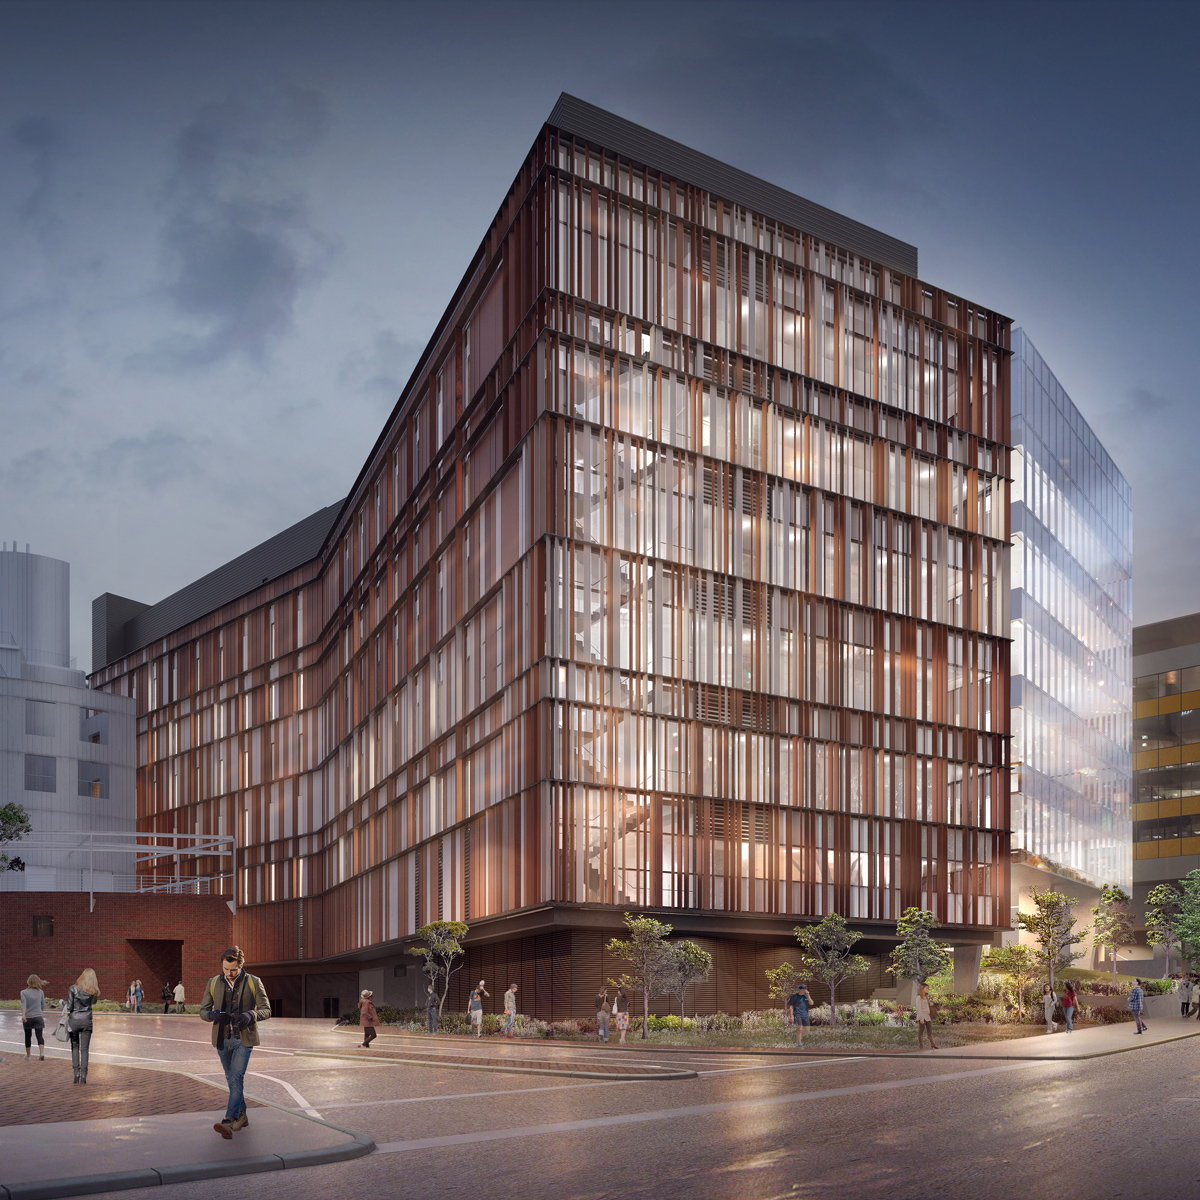 Woods Bagot Designs New Biological Sciences Building at UNSW